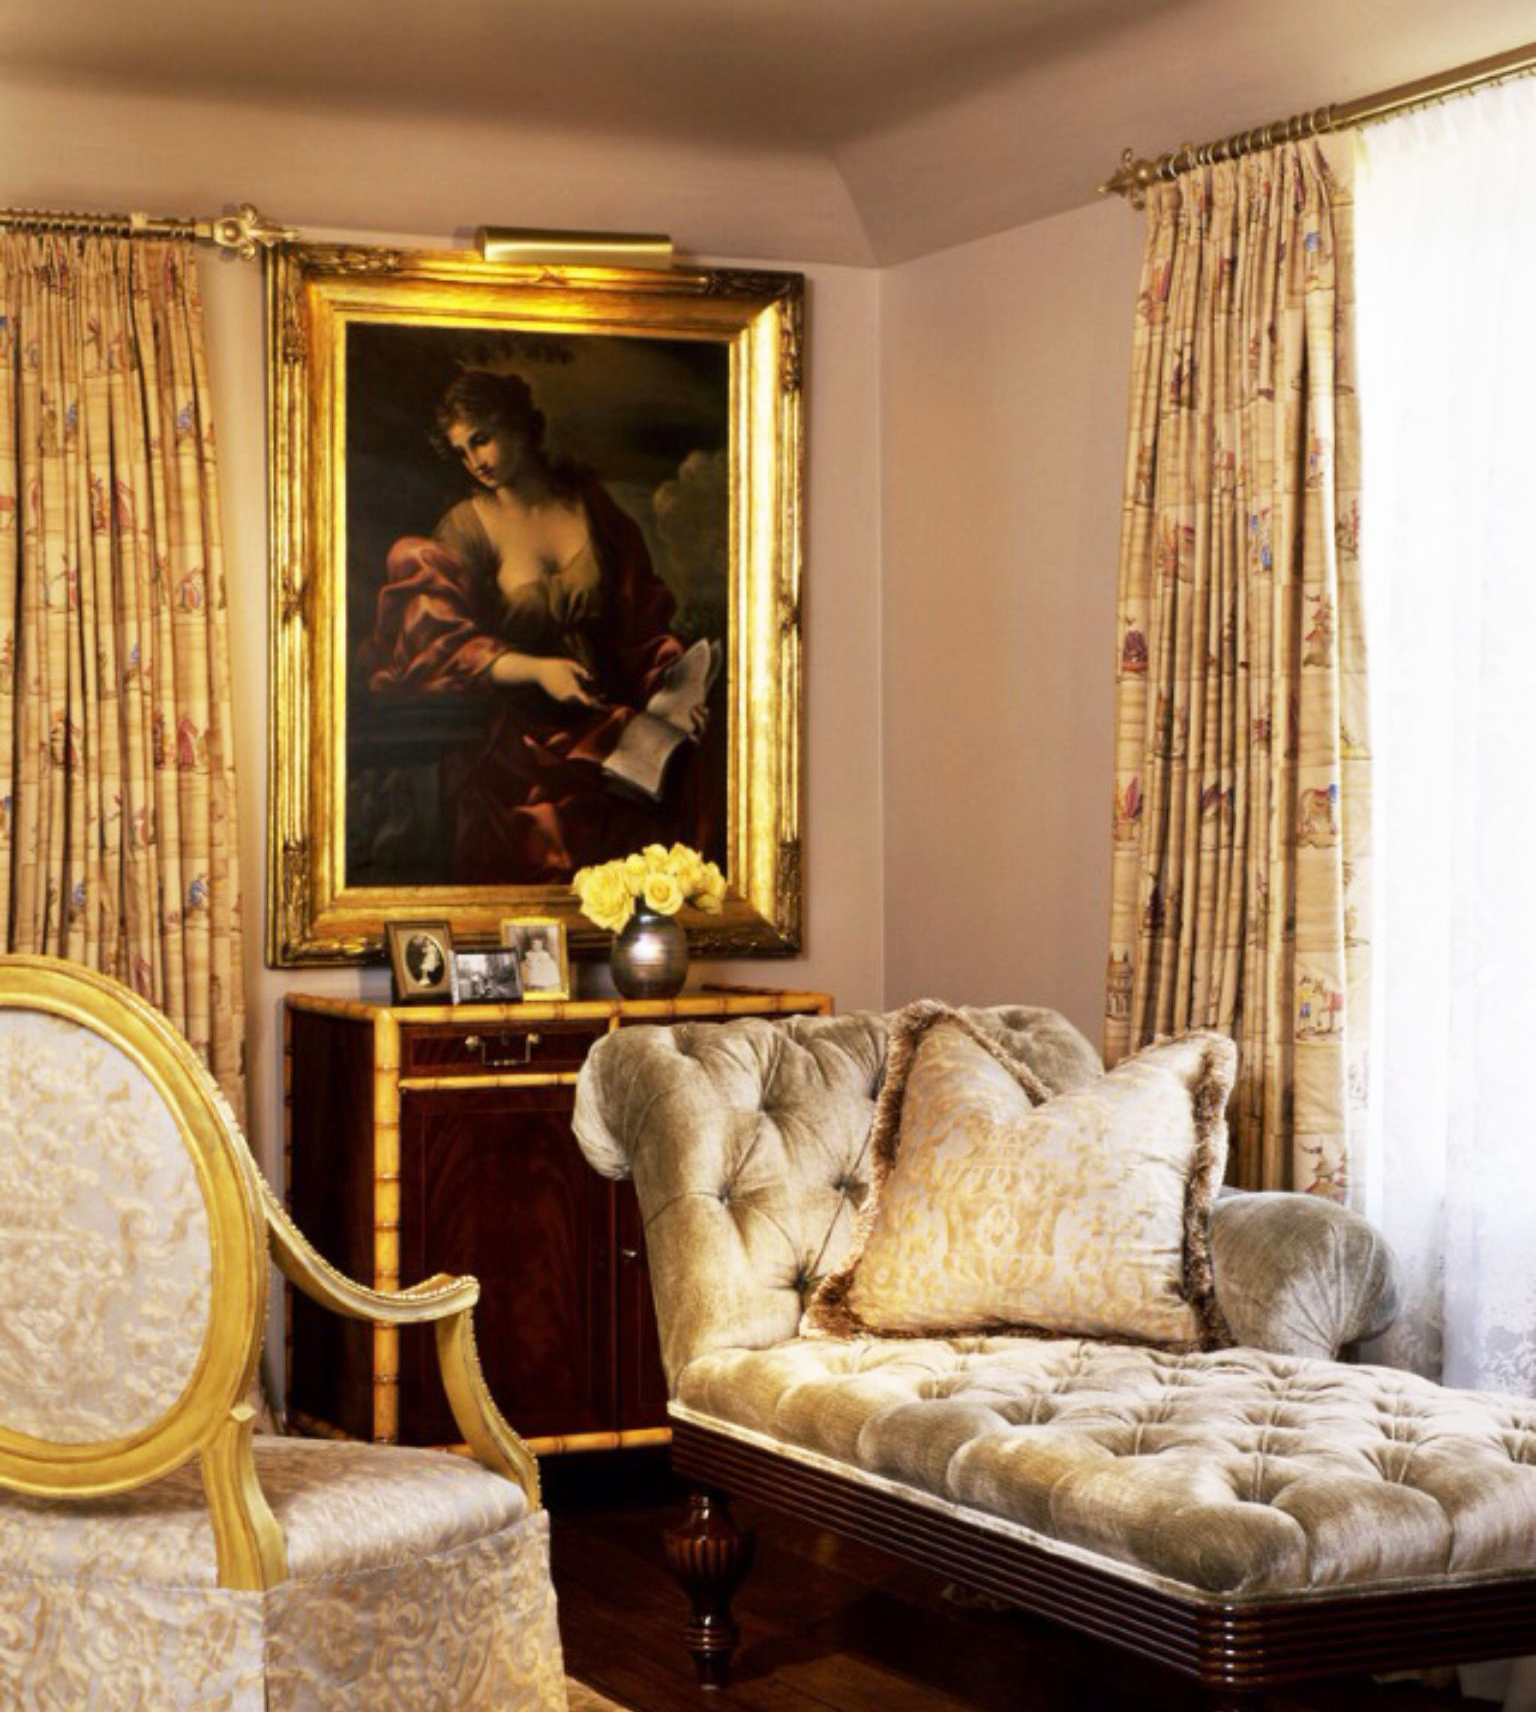 renovation fauteuil paris citeaux mural 01 43 79 01 43 renovation de fauteuil paris. Black Bedroom Furniture Sets. Home Design Ideas